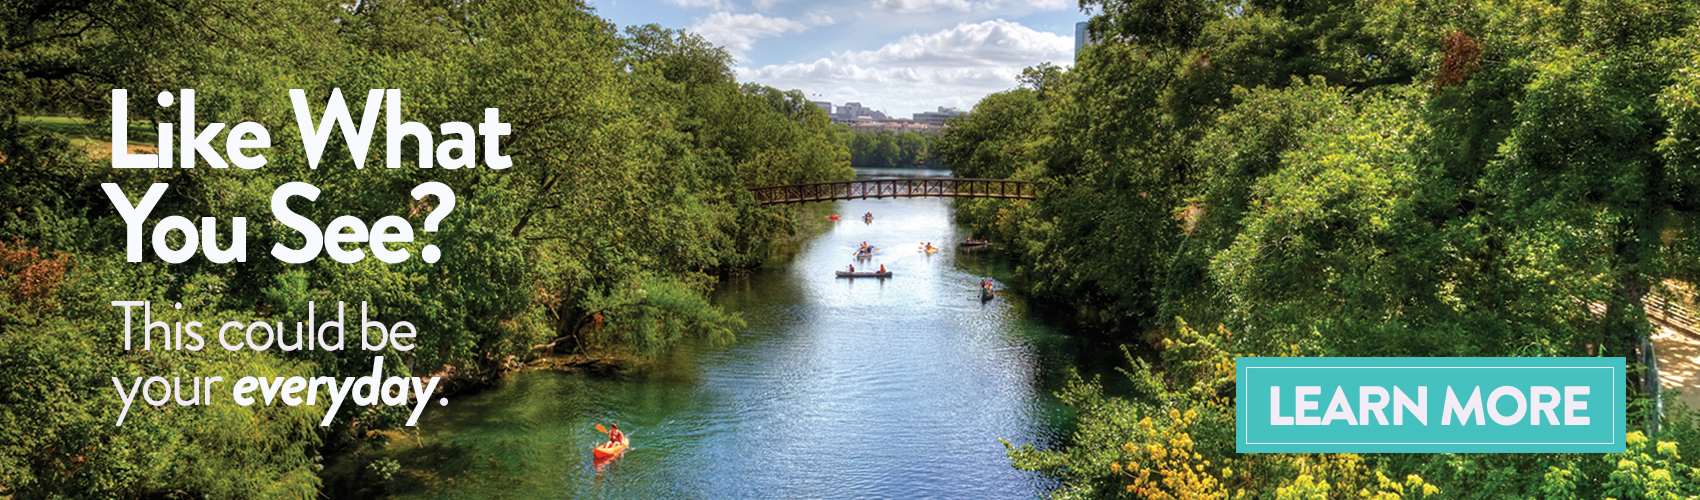 All The Things You Must Do In Austin - 11 things to see and do in austin texas